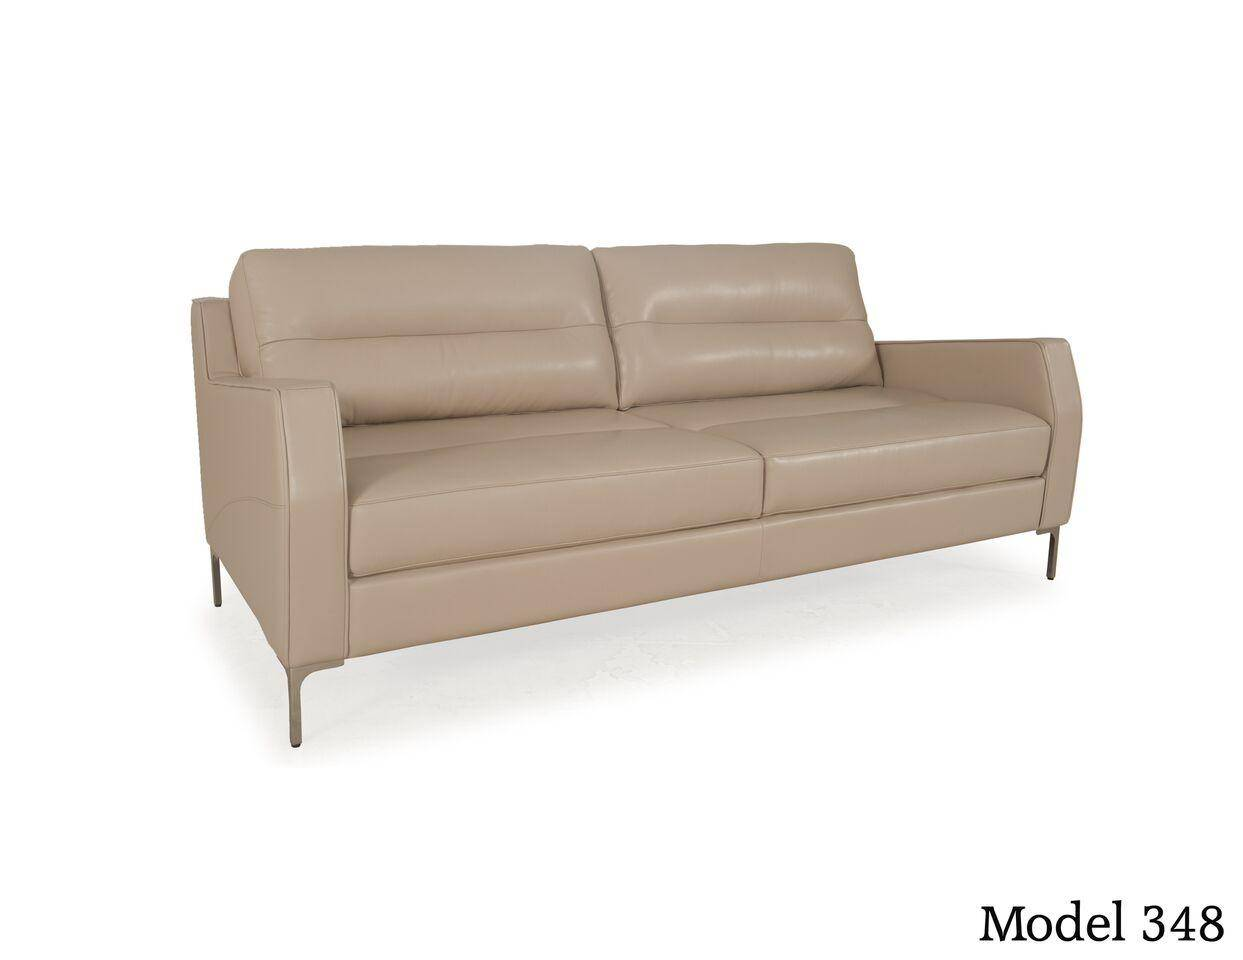 Moroni Isabel 348 Top Grain Leather Upholstery Mid-Century Sofa SPECIAL  ORDER